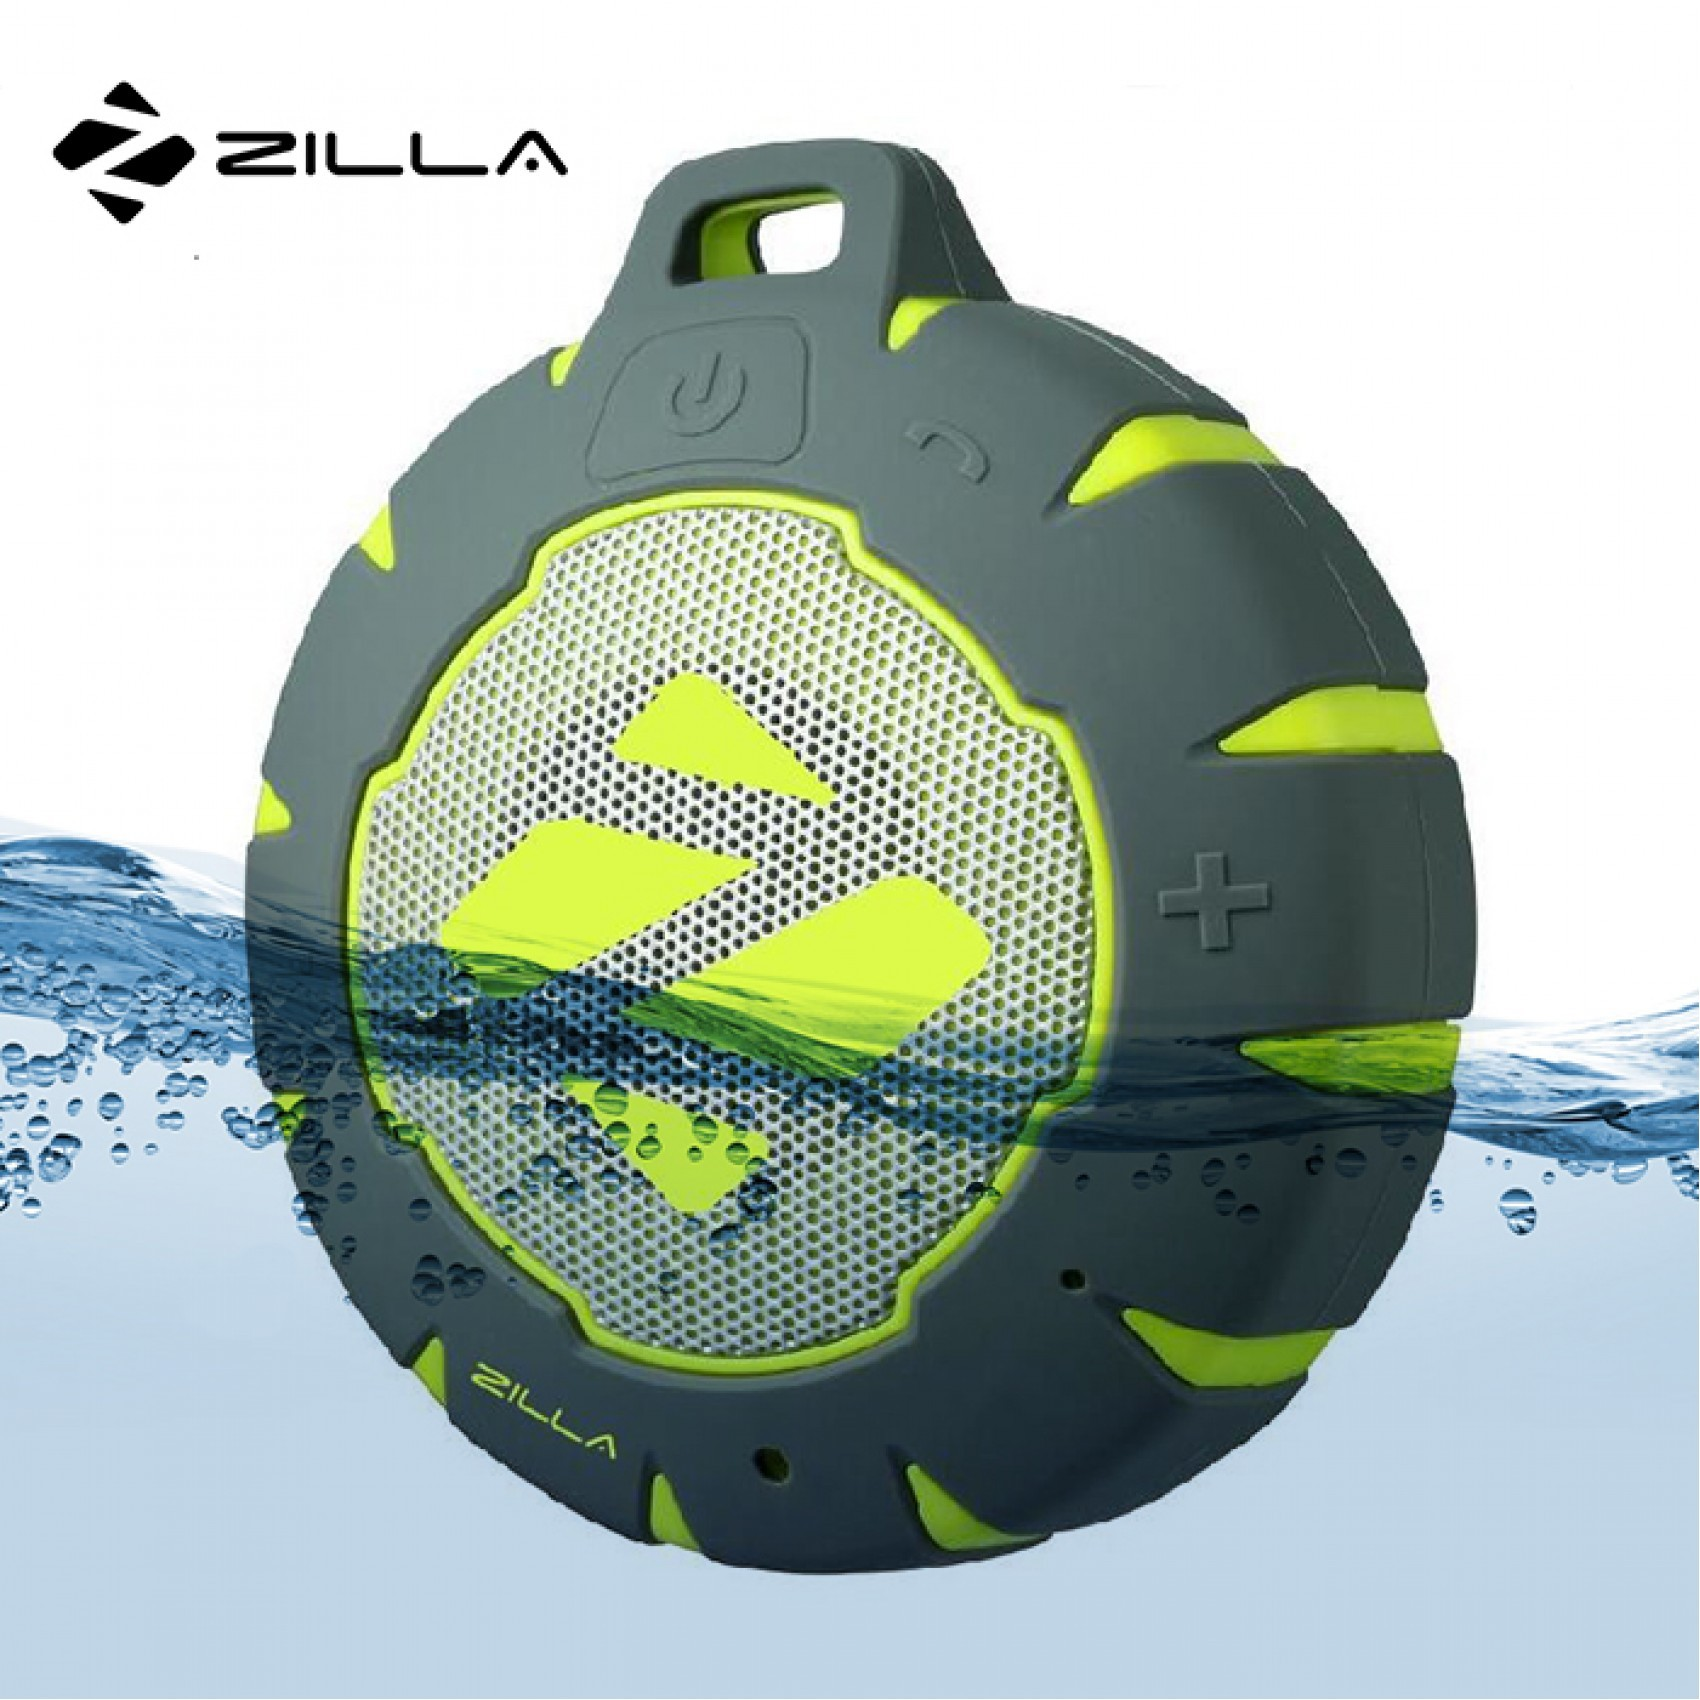 Zilla Outdoor Floating Bluetooth Speaker - Green